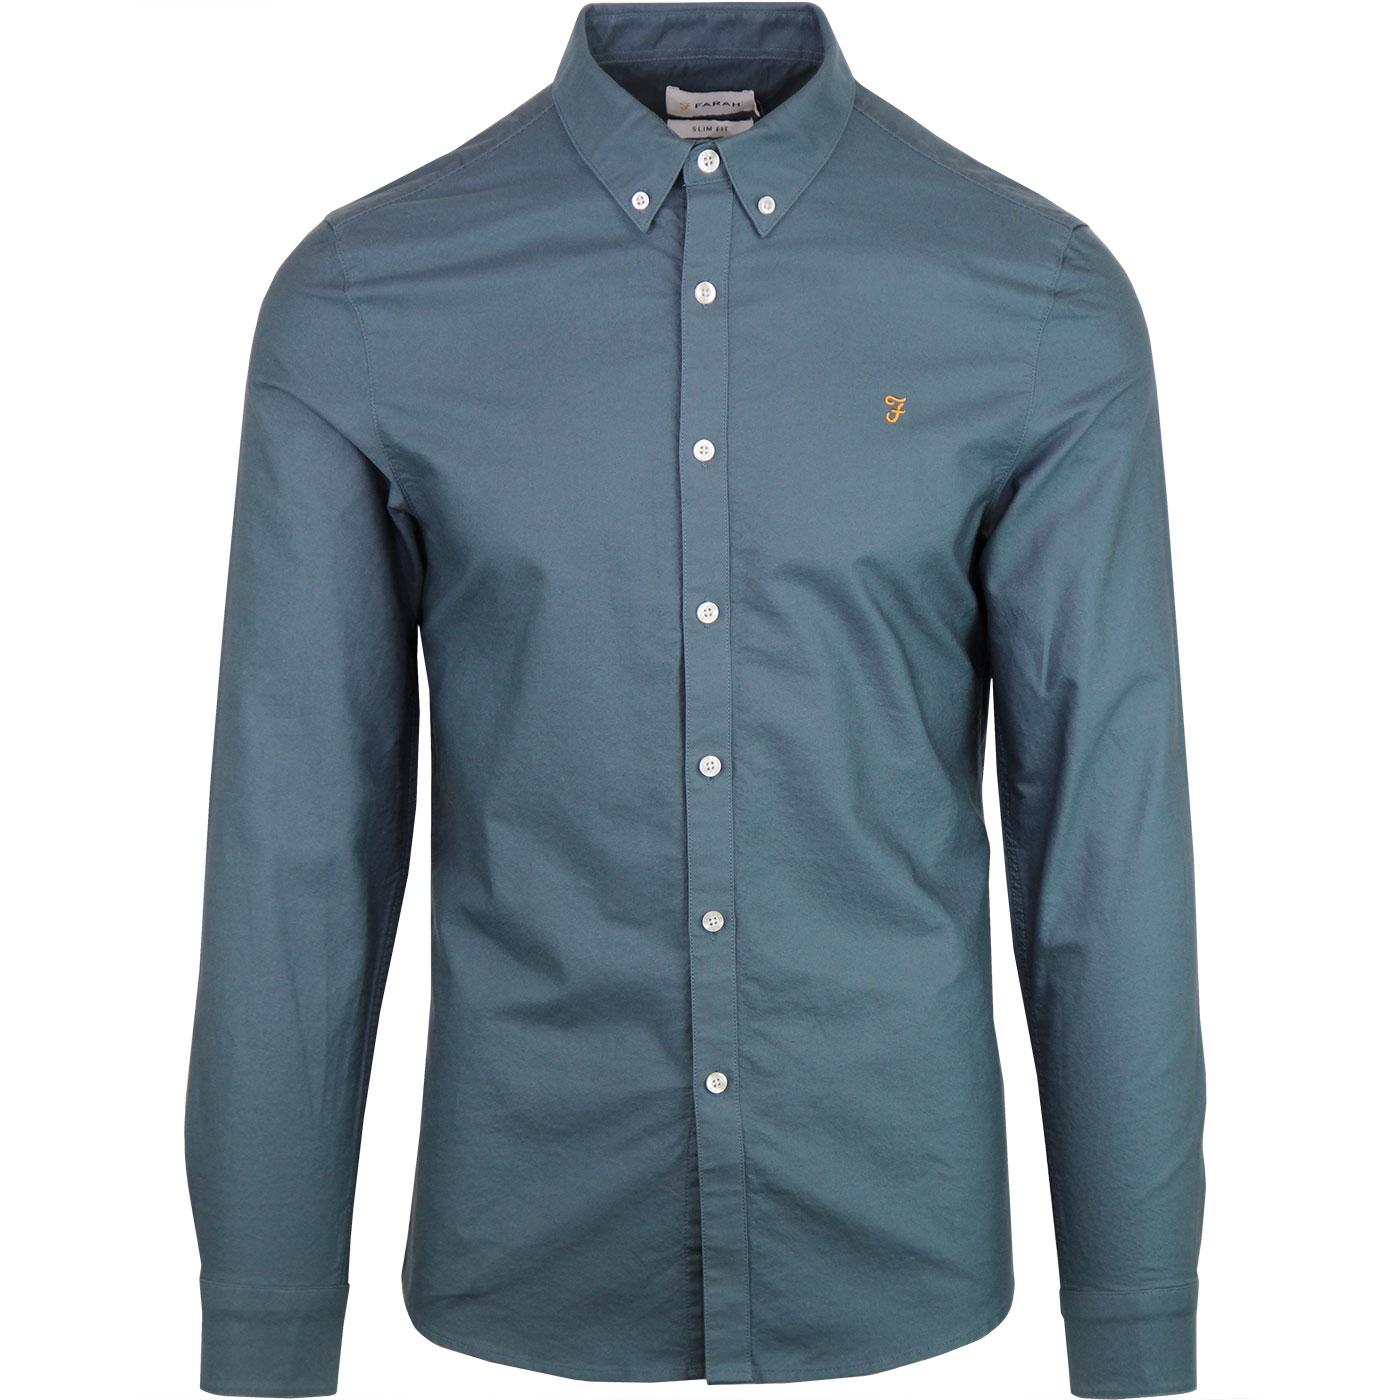 Brewer FARAH Slim Button Down Oxford Shirt - Ocean